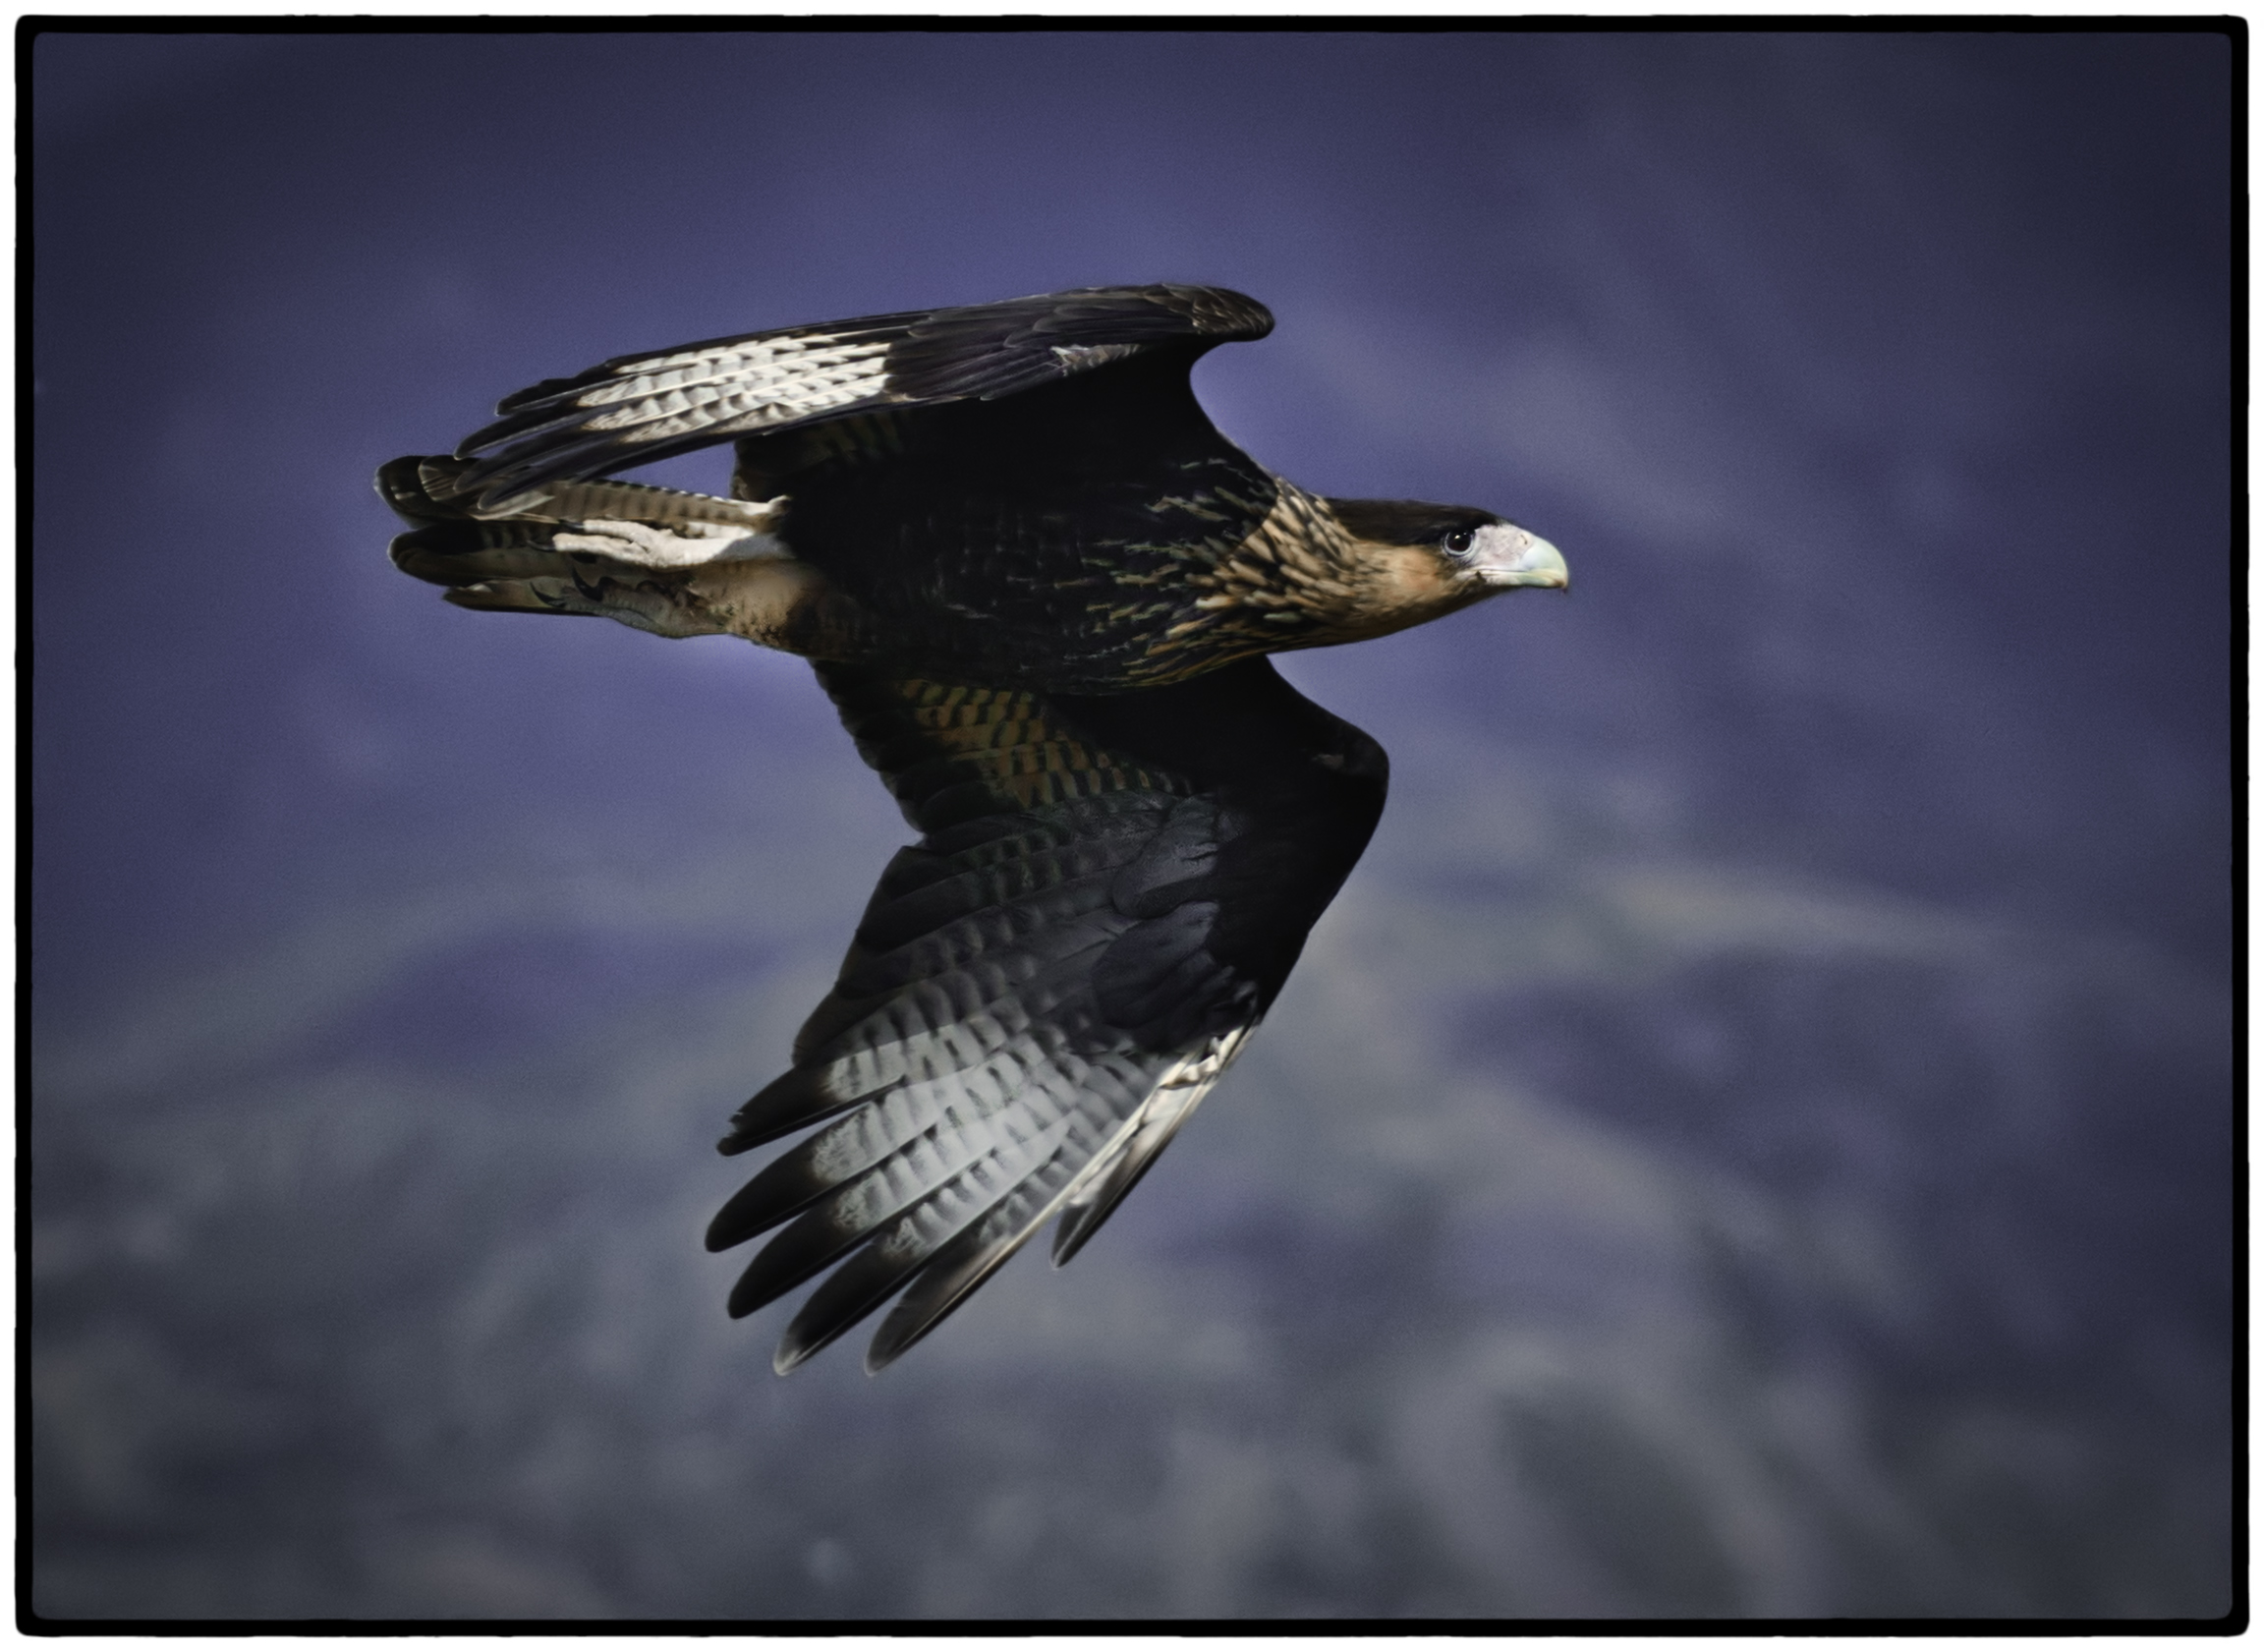 Southern Crested Caracara, Chile